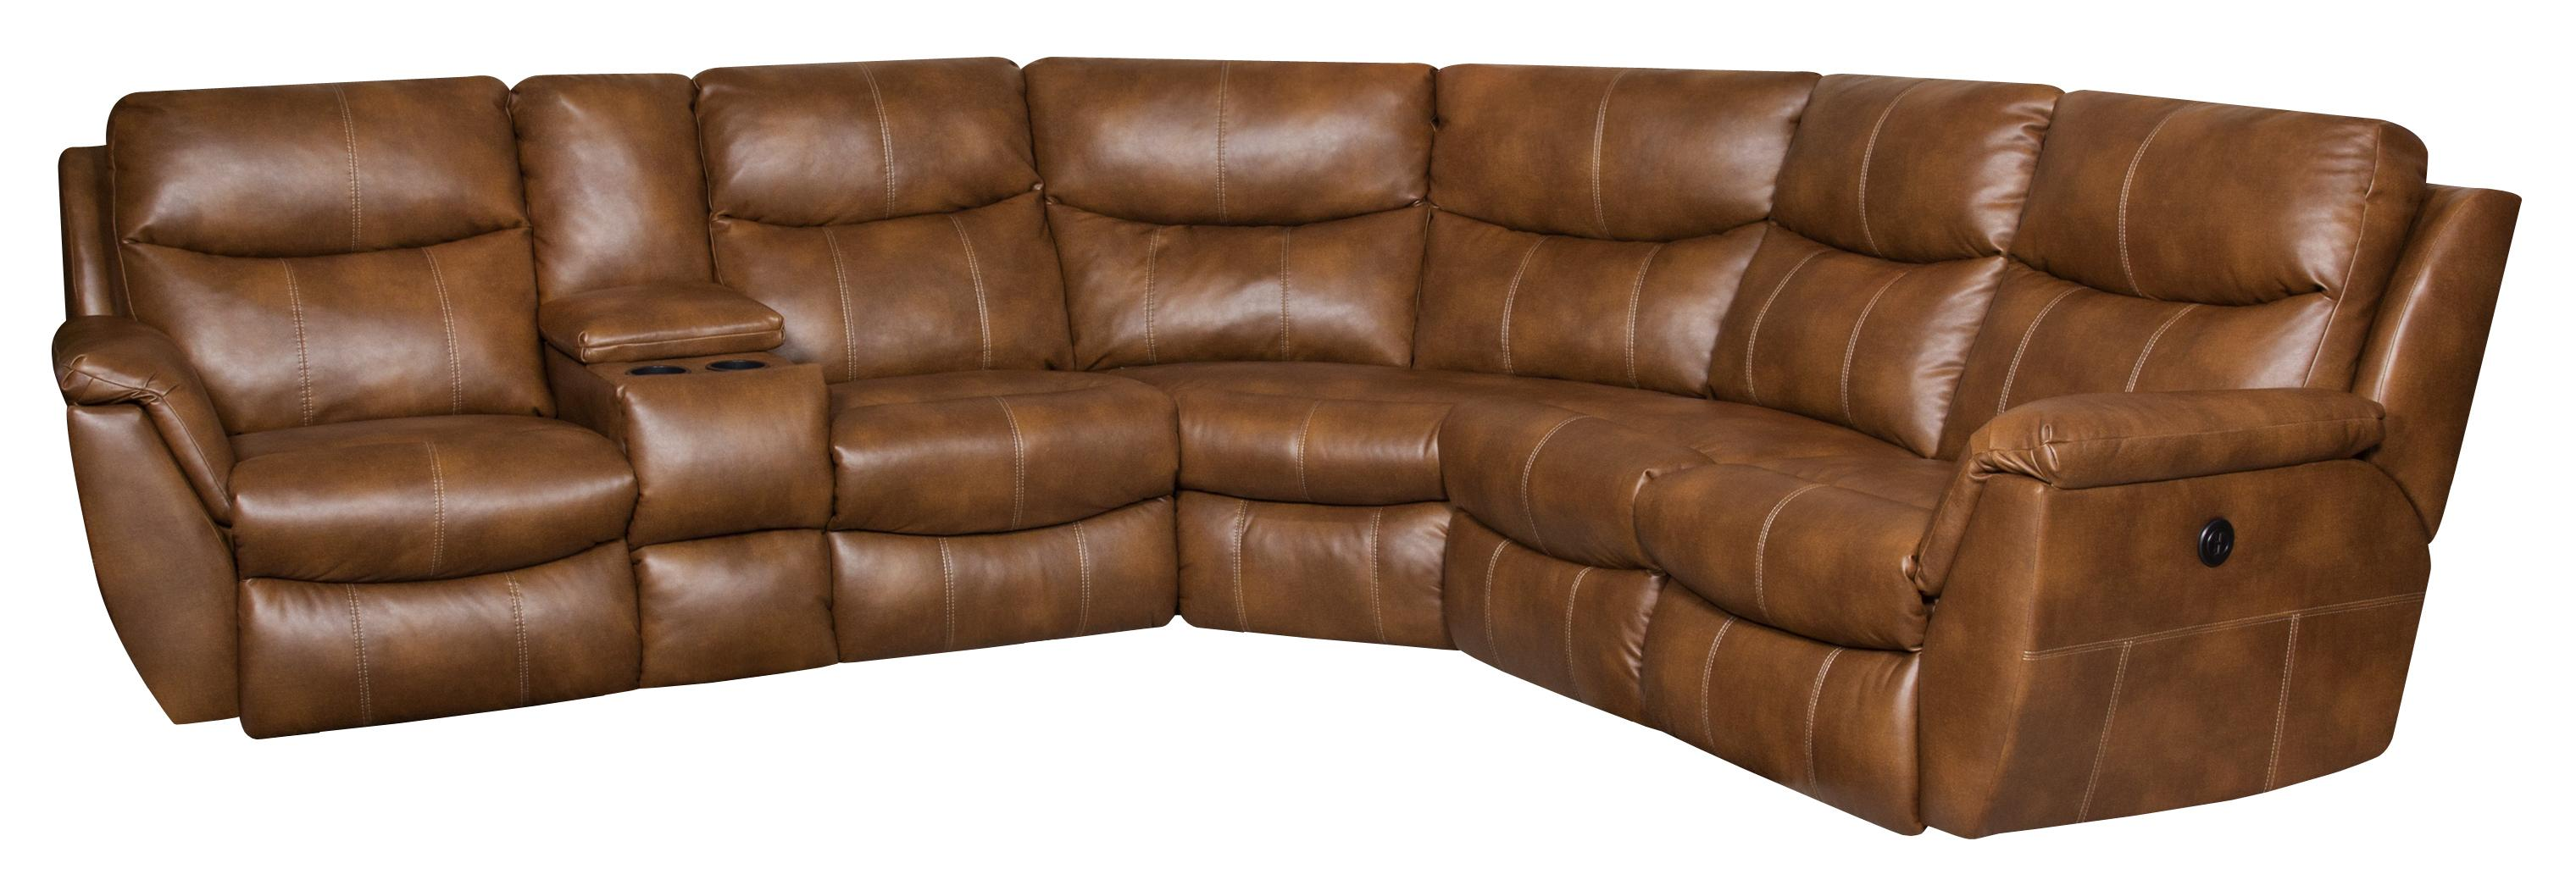 Southern Motion Monaco POWER Reclining Sectional Sofa - Item Number: 564-07P+47+80+84+92+08P-241-17